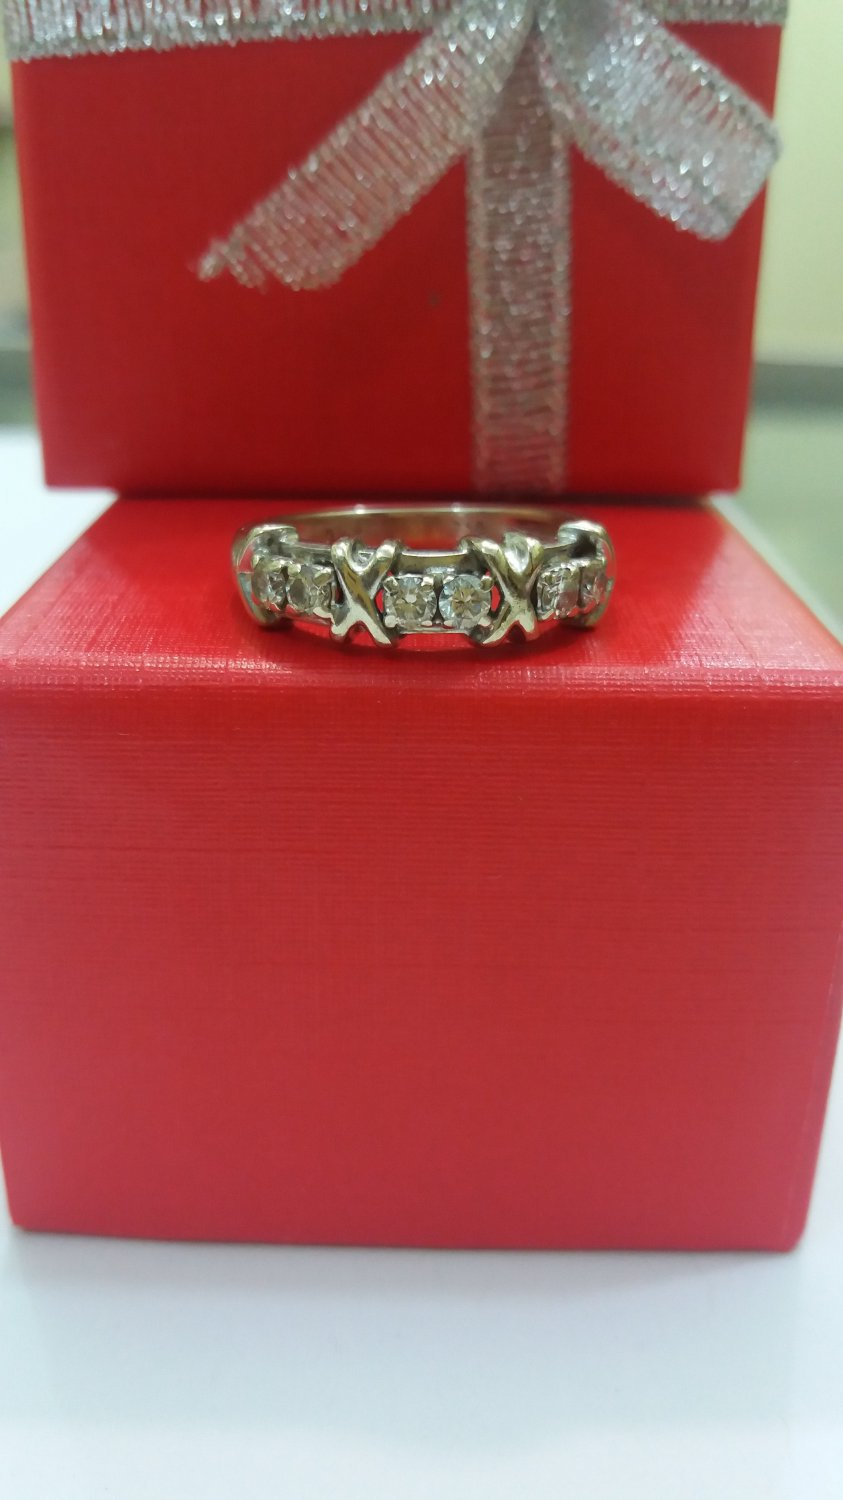 Tiffany & Co. 18K Solid White Gold Schlumberger 6 Natyral Diamond Ring Size 7.5 Very Rare